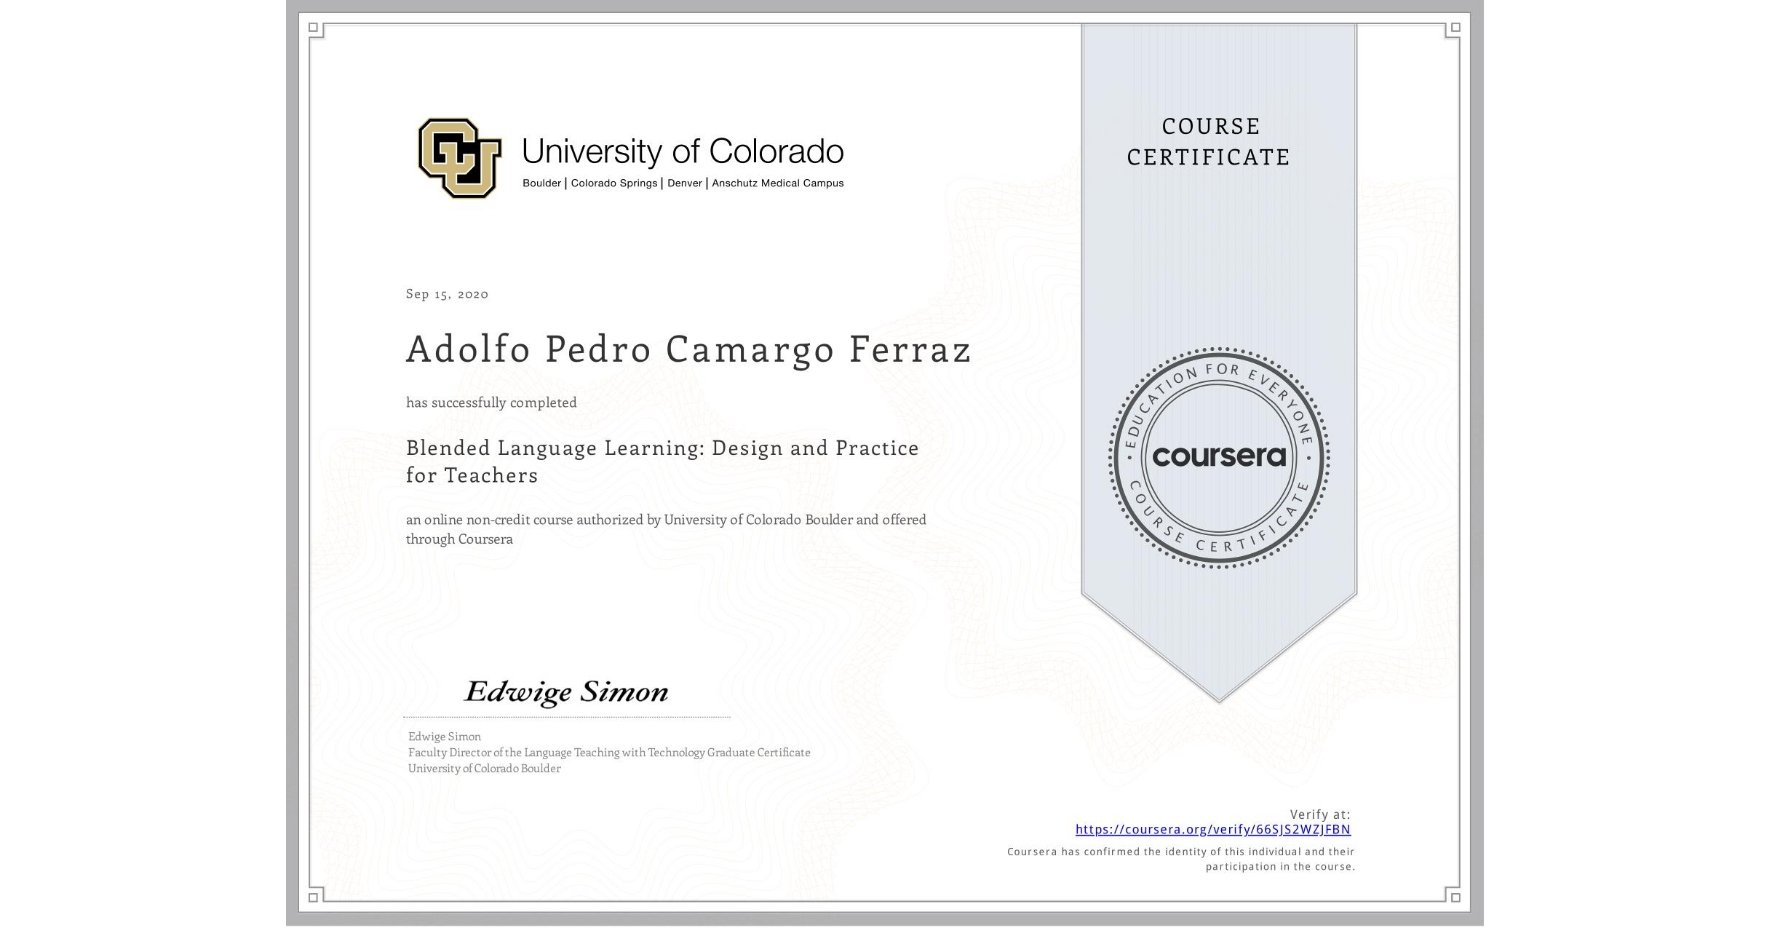 View certificate for Adolfo Pedro Camargo Ferraz, Blended Language Learning: Design and Practice for Teachers, an online non-credit course authorized by University of Colorado Boulder and offered through Coursera